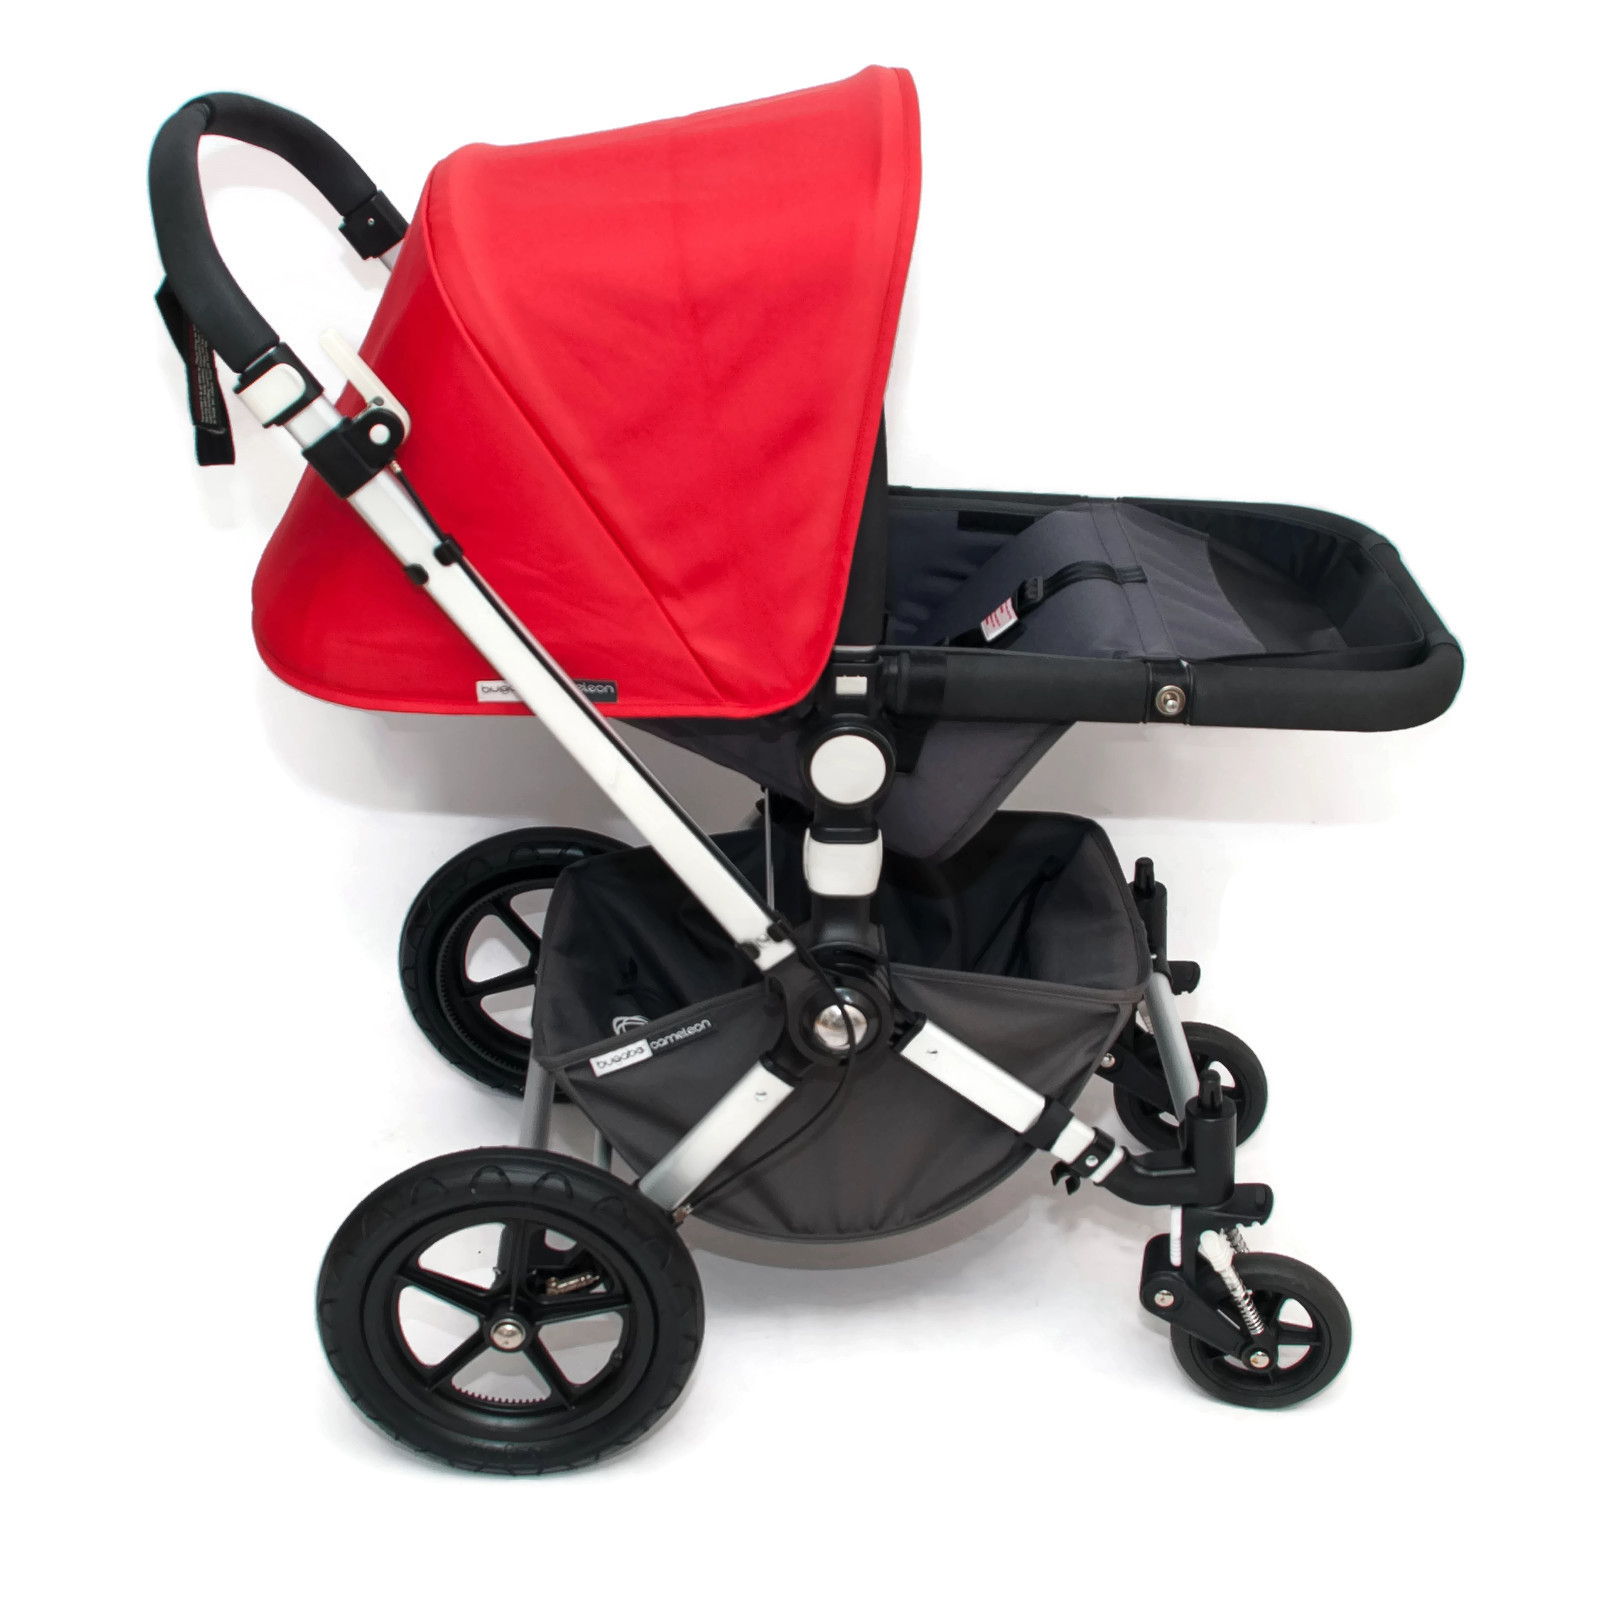 bugaboo cameleon 2 kinderwagen set komplett rot grau ebay. Black Bedroom Furniture Sets. Home Design Ideas